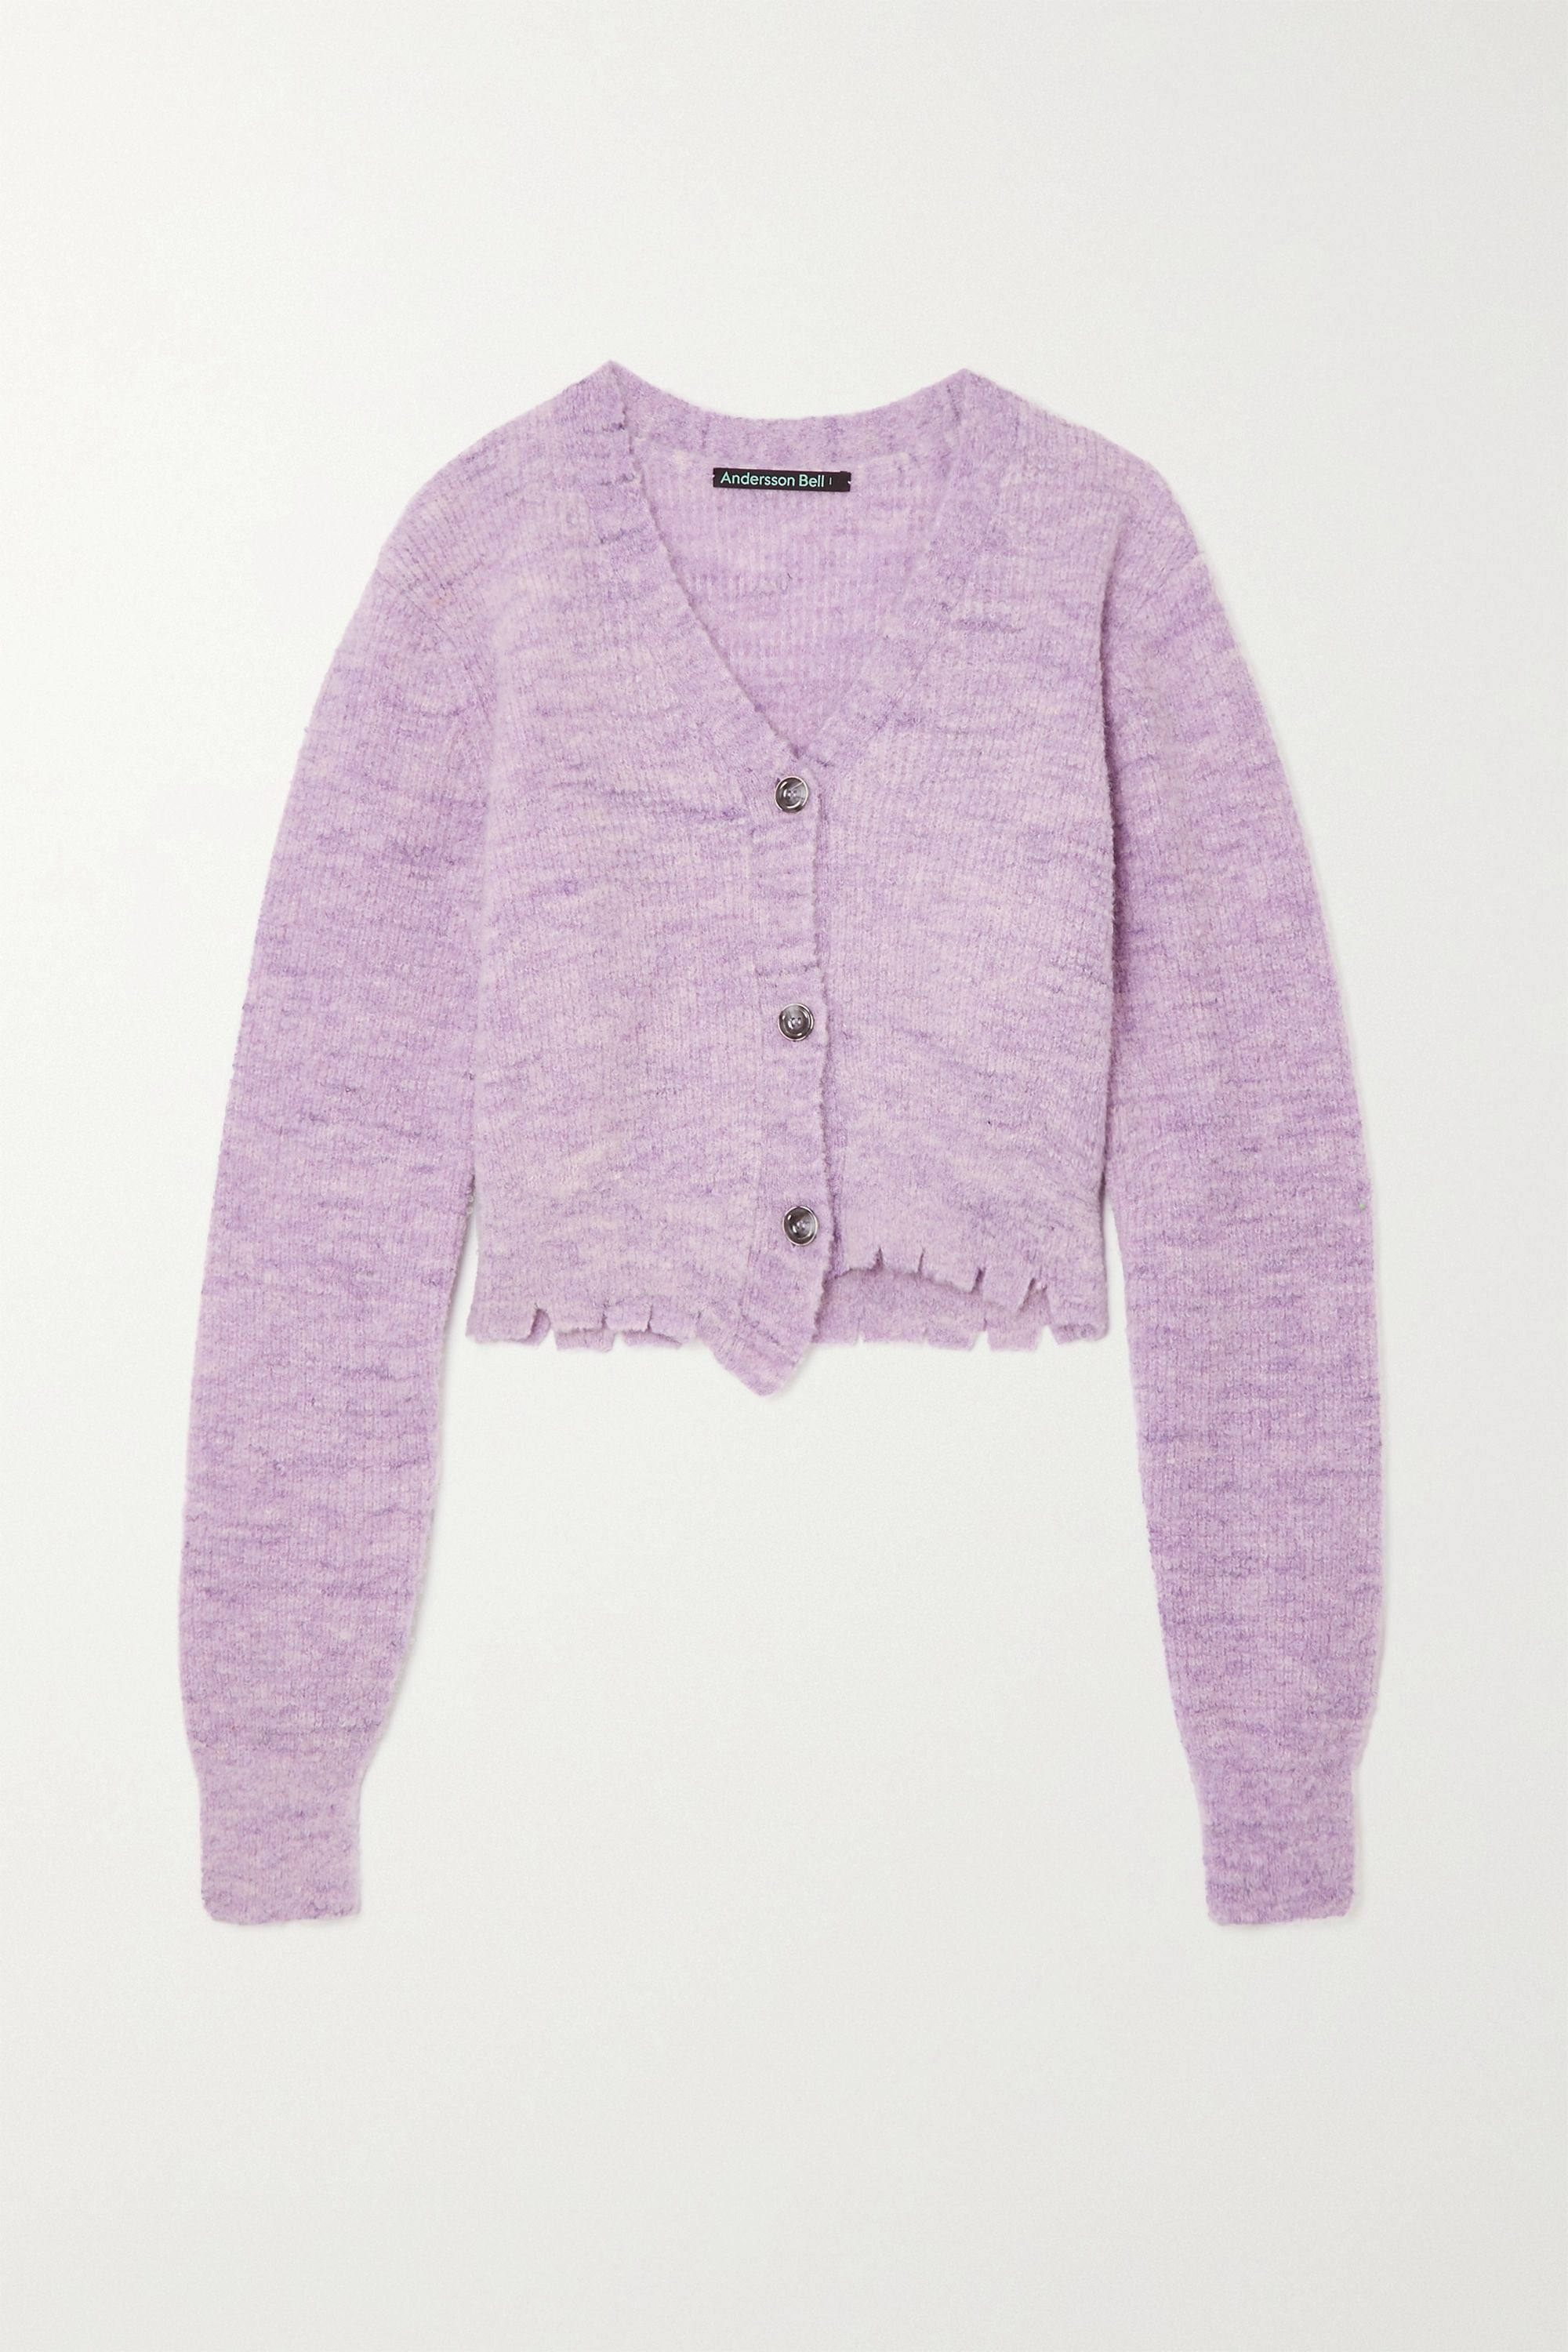 Andersson Bell Lua distressed mélange knitted cardigan